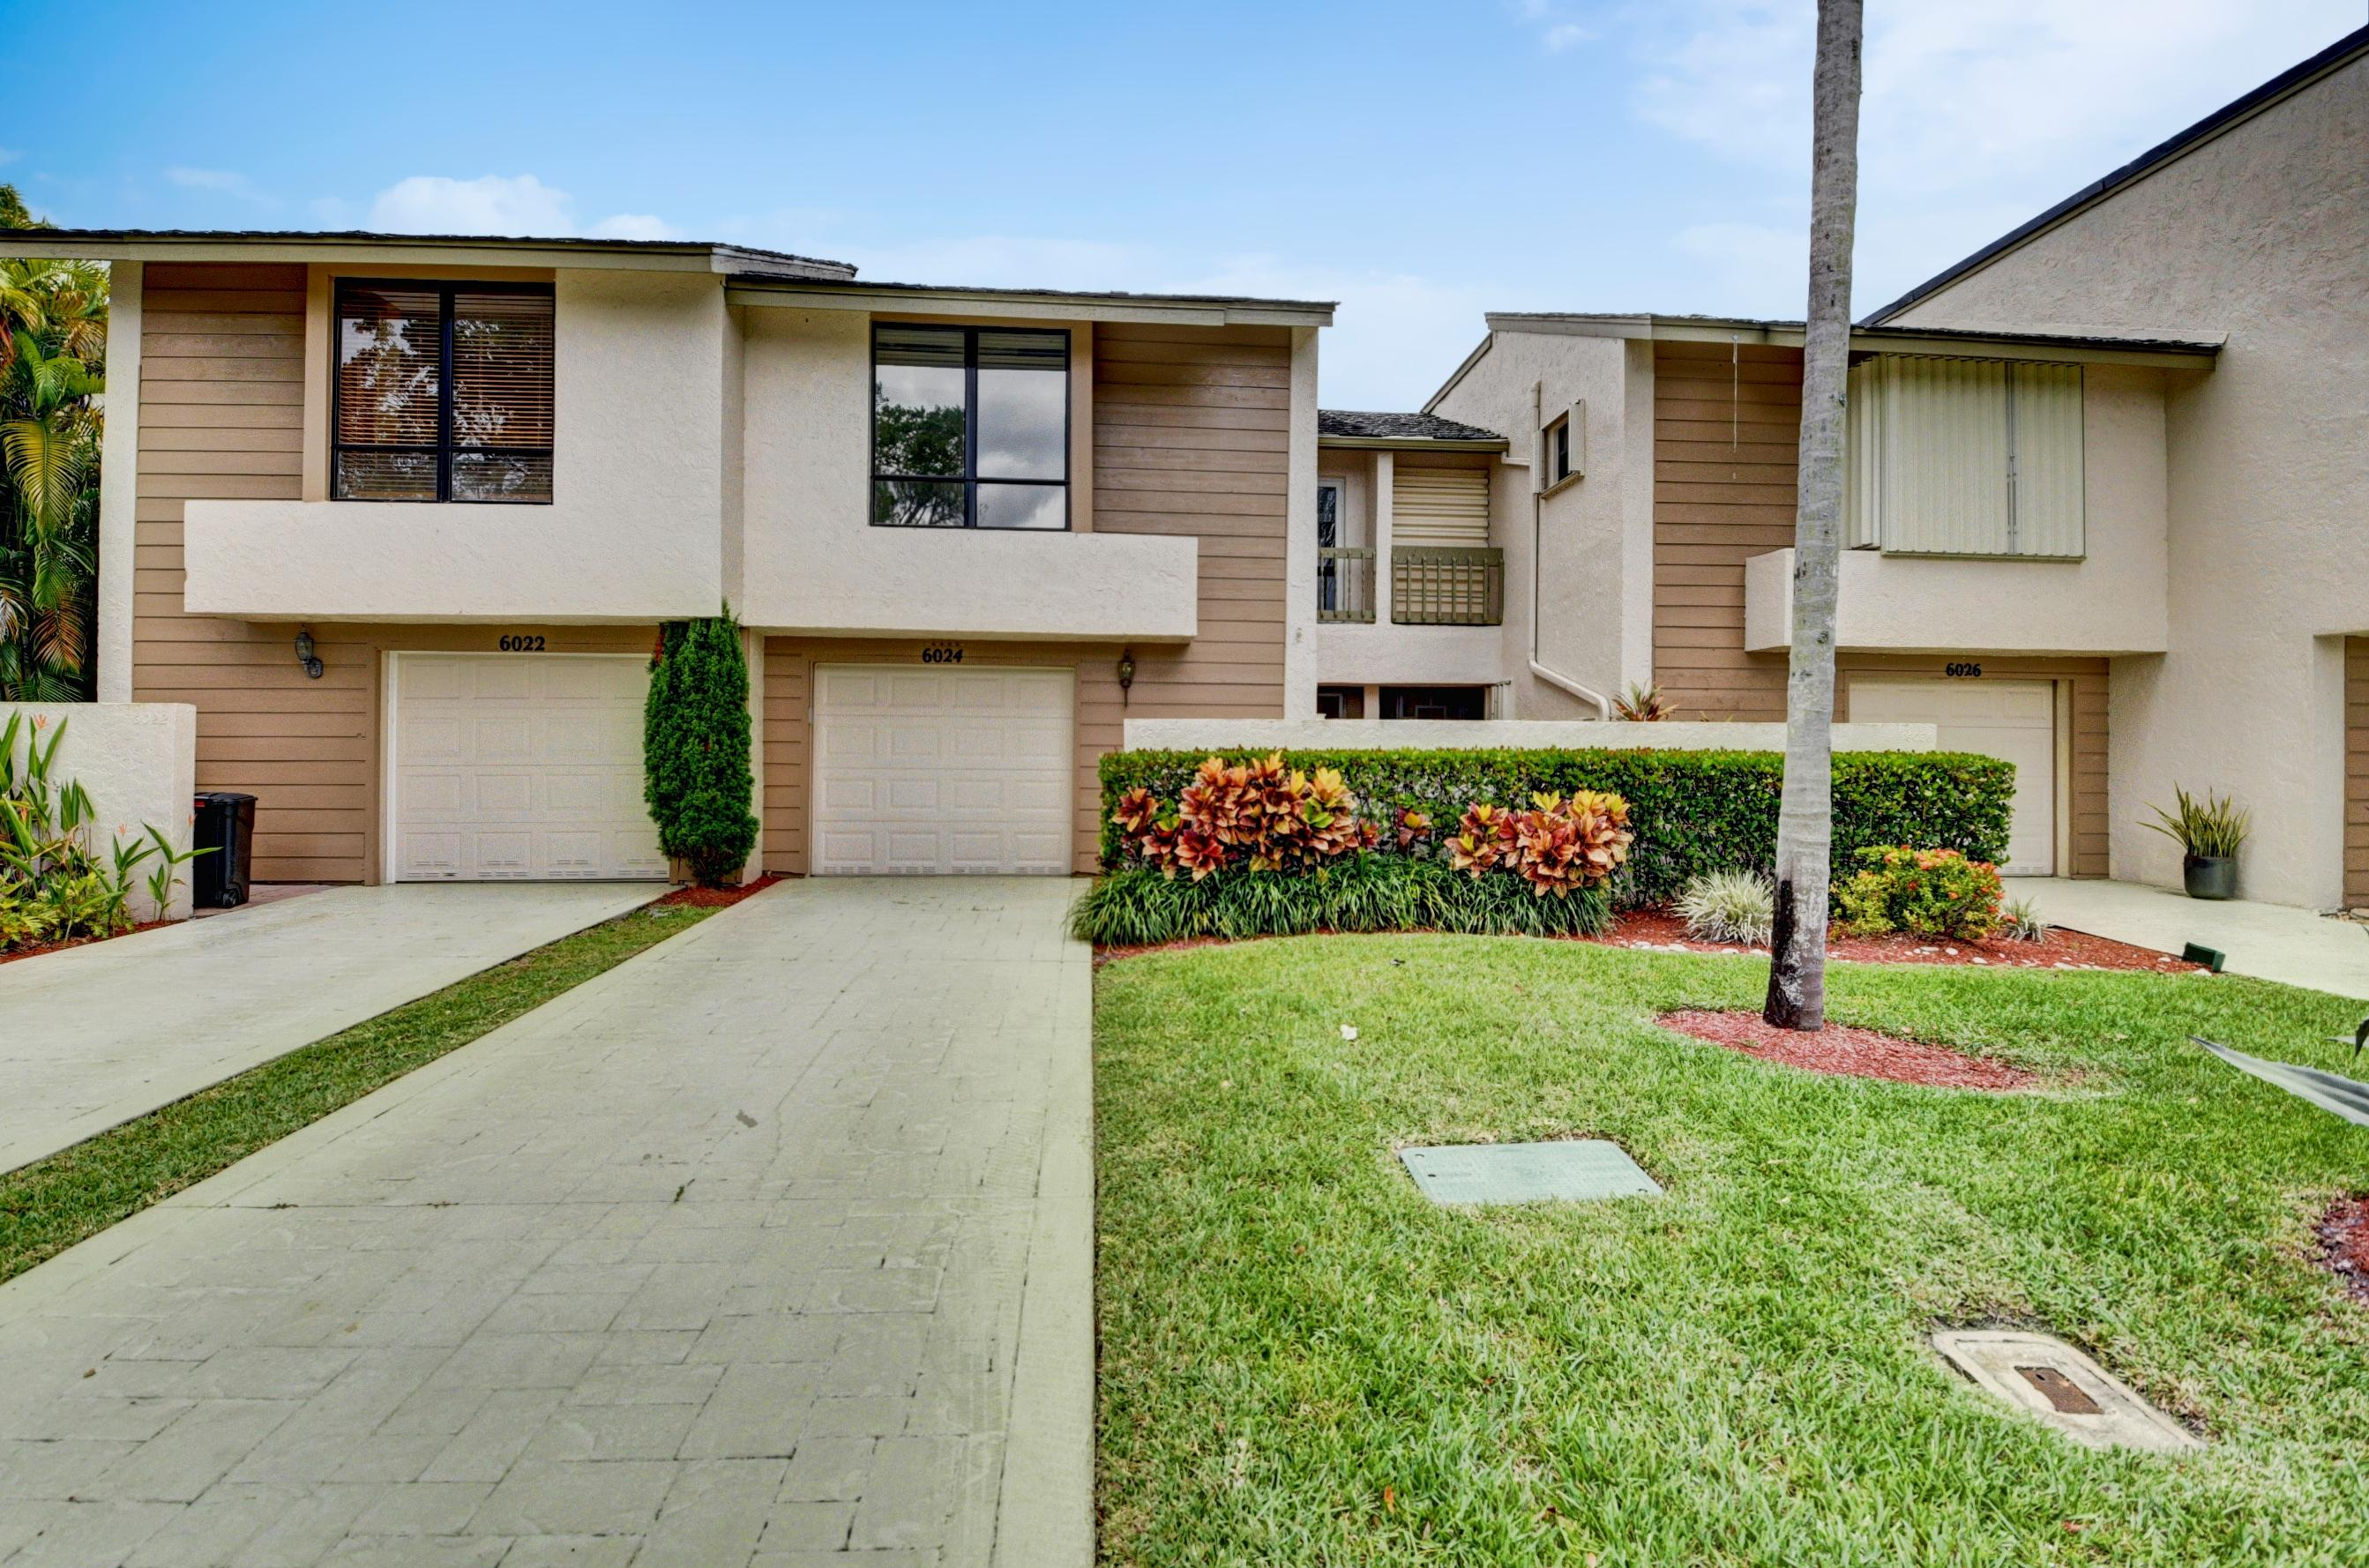 Home for sale in Ironwedge Boca Raton Florida